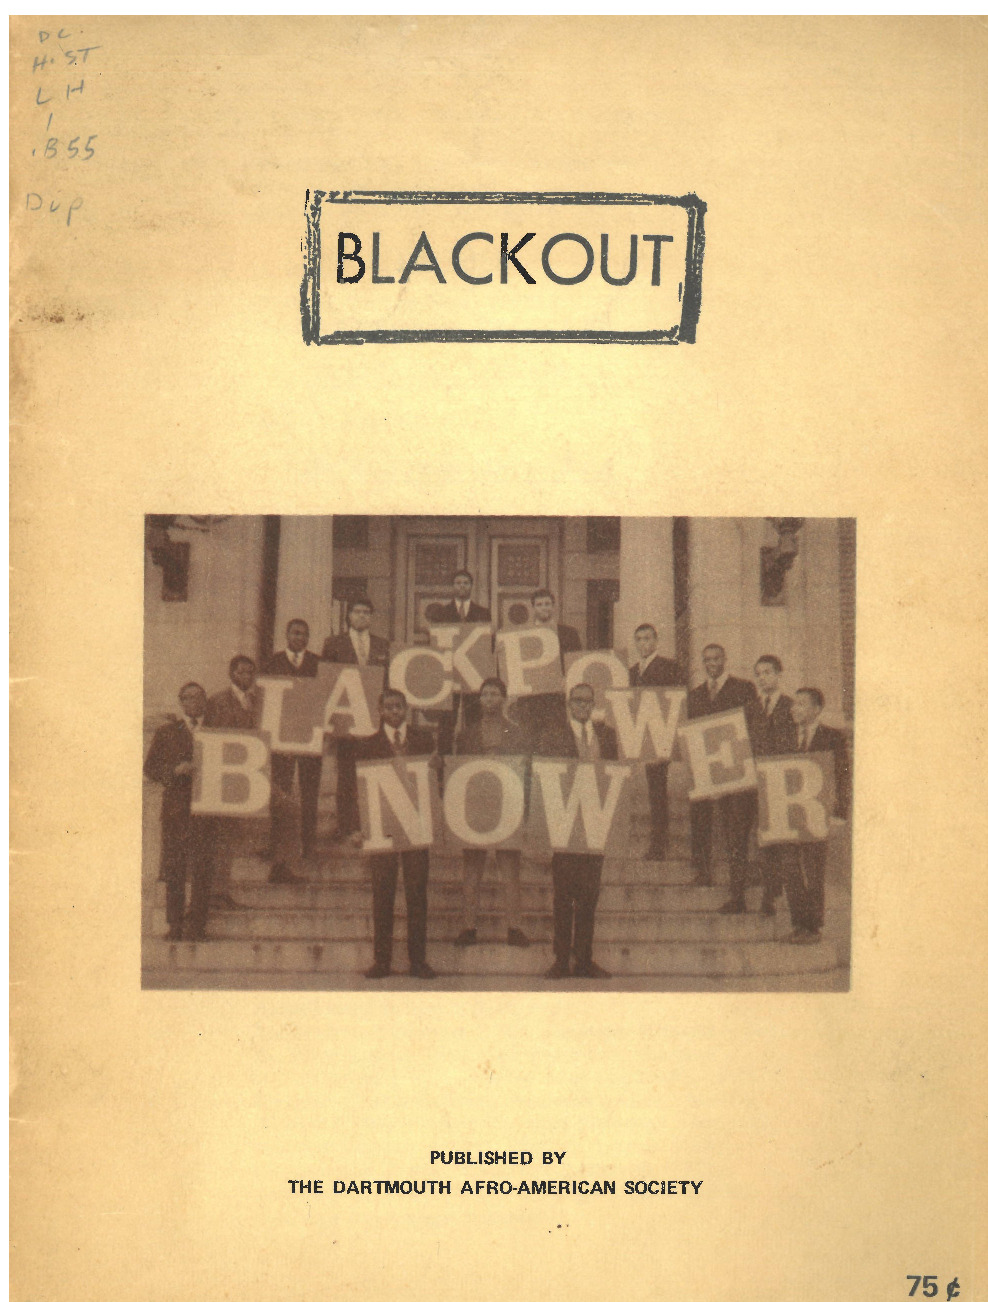 """The first volume of Afro-American Society (AAS) student magazine Blackout, published in Fall 1967. The cover depicts AAS members holding signs that spell out """"BLACK POWER NOW"""" on the steps of McNutt Hall, the home of the College's administration offices. A highlight of this first volume is a photograph of Civil Rights leader Kwame Ture (Stokely Carmichael) and student Woody Lee '68 (p. 41). The photo caption recounts how Ture's impassioned speech inspired AAS members to take action in demanding """"BLACK POWER NOW!"""""""